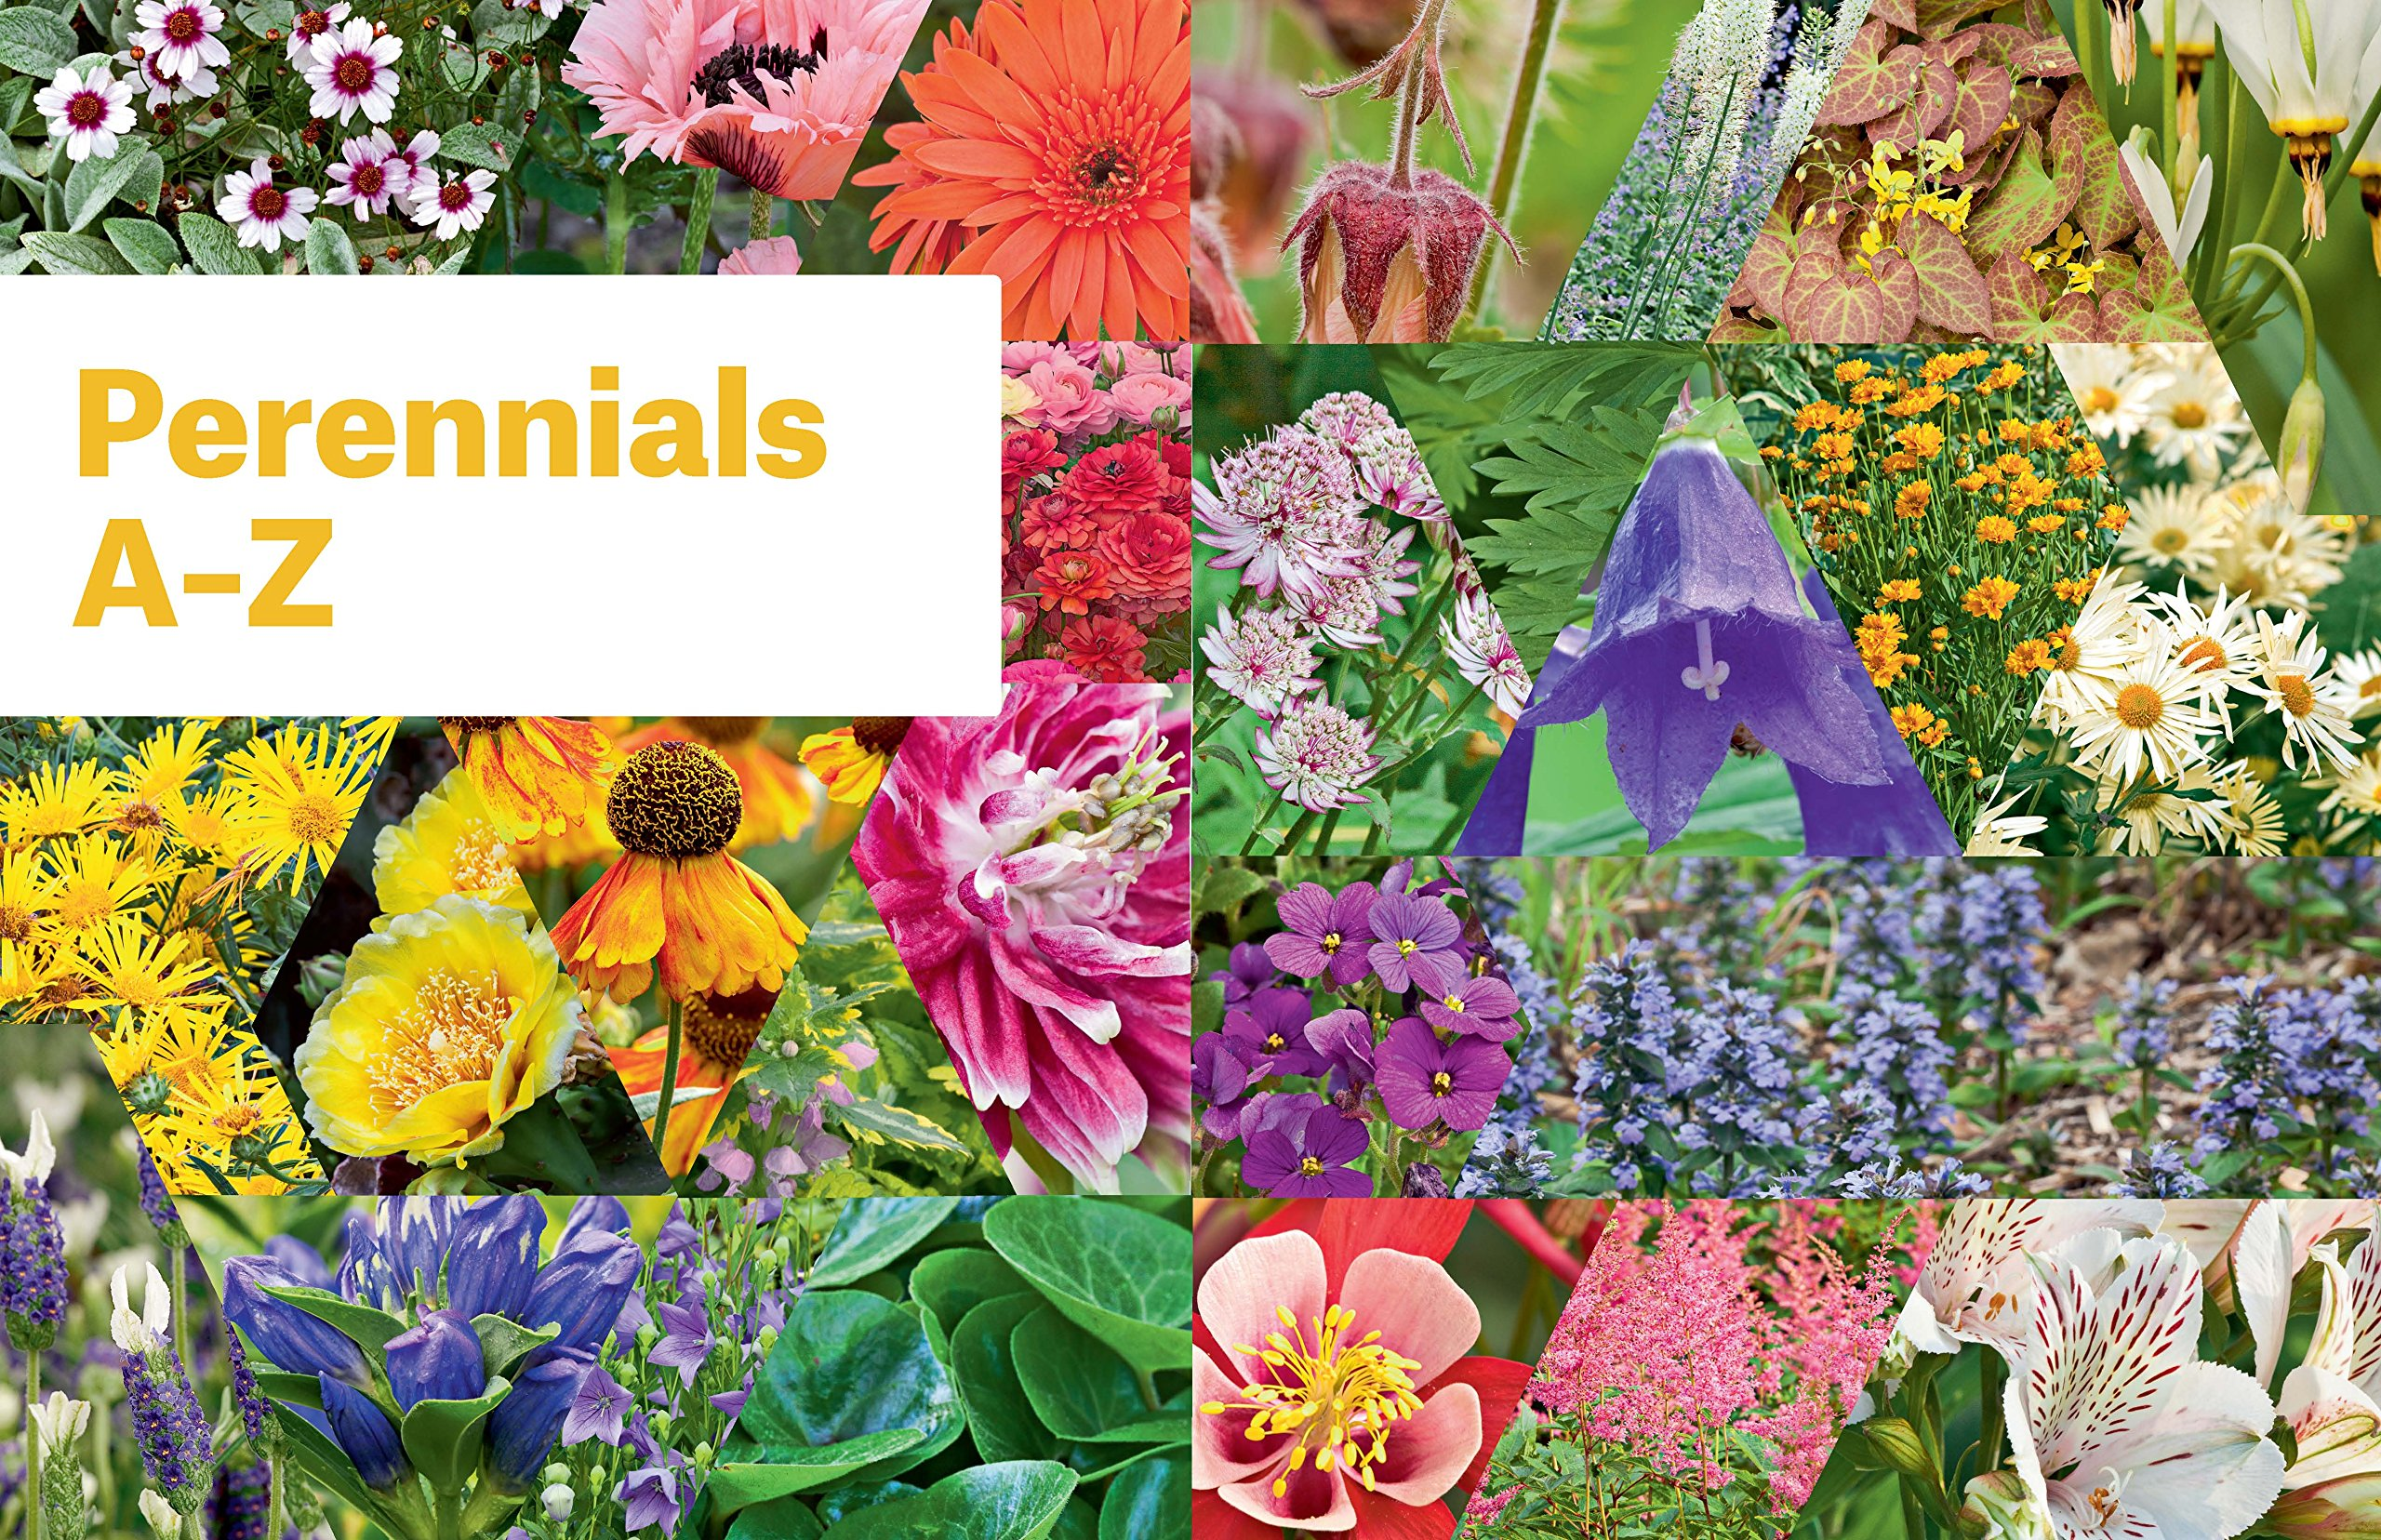 Essential Perennials: The Complete Reference To 2700 Perennials For The  Home Garden: Ruth Rogers Clausen, Thomas Christopher, Alan L. Detrick: ...